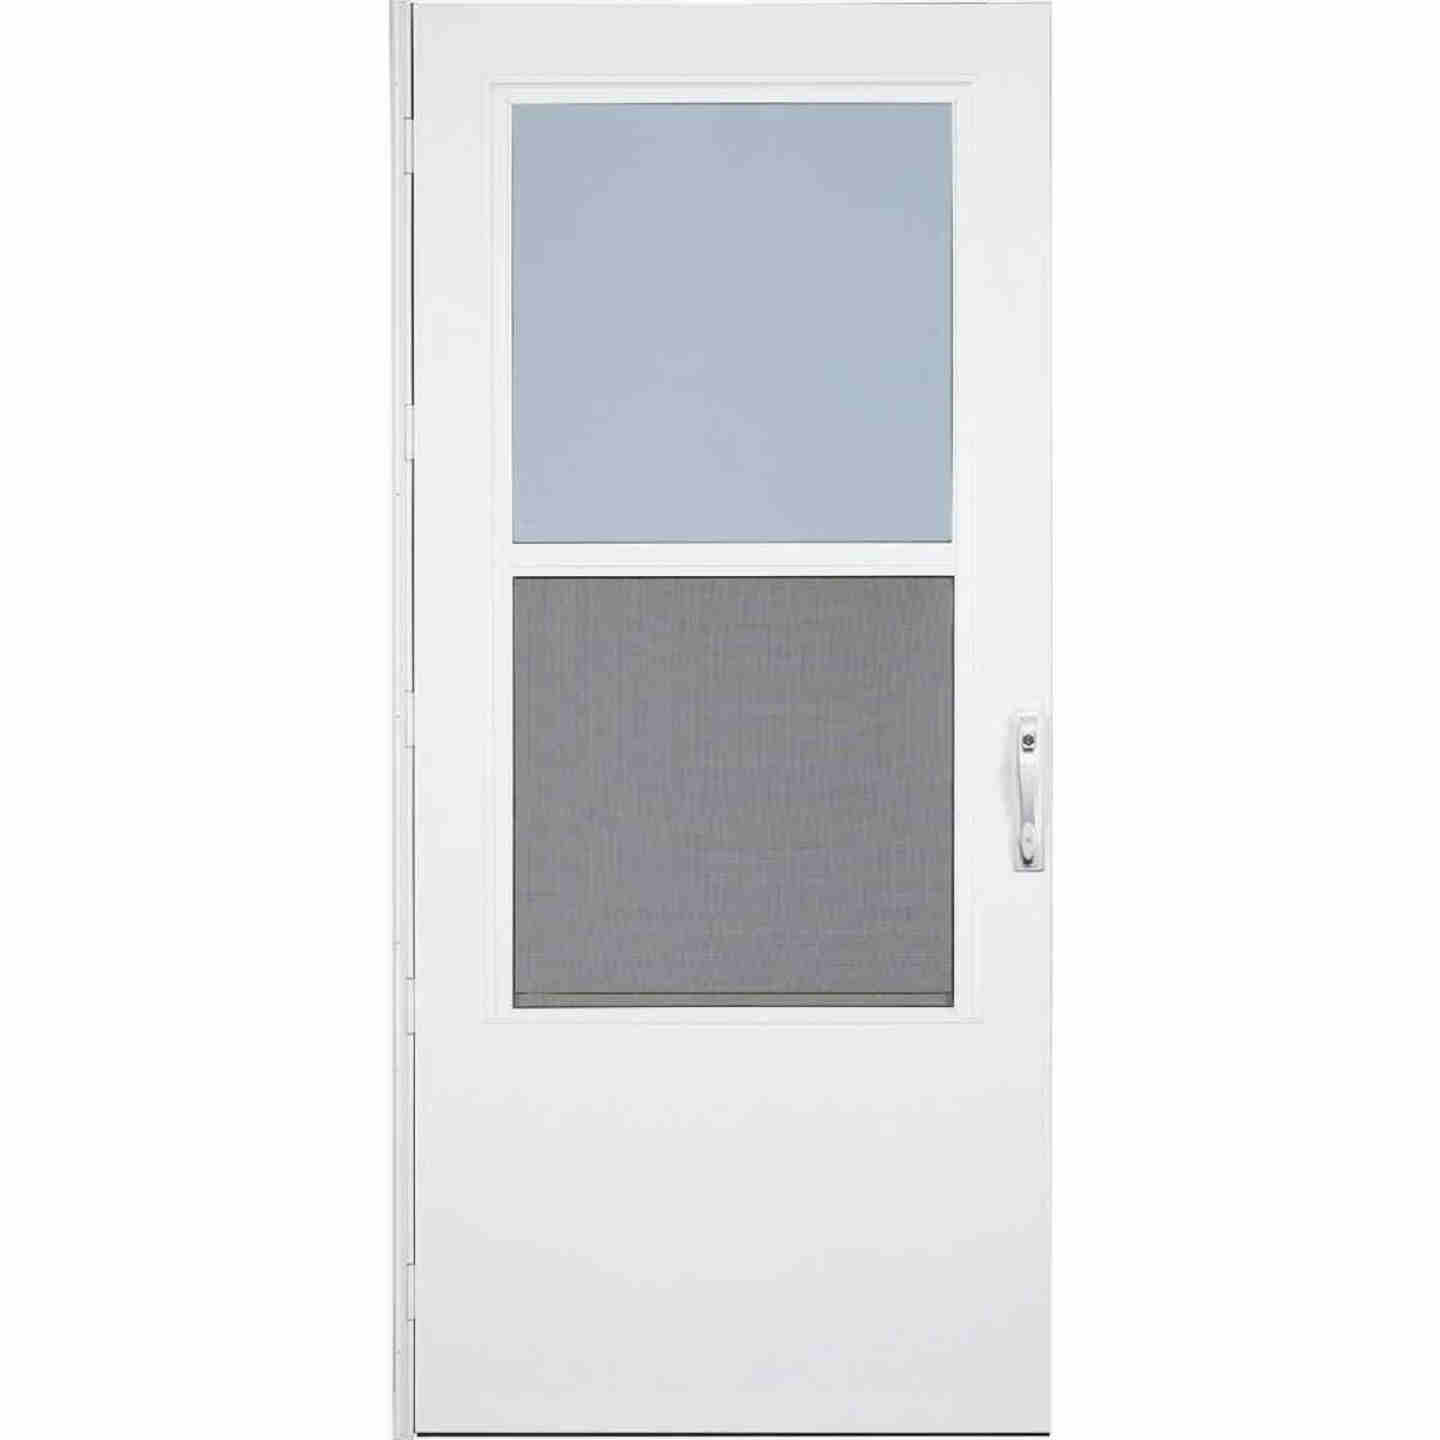 Larson Life-Core DuraTech 36 In. W x 80 In. H x 1 In. Thick White Self-Storing Storm Door Image 1